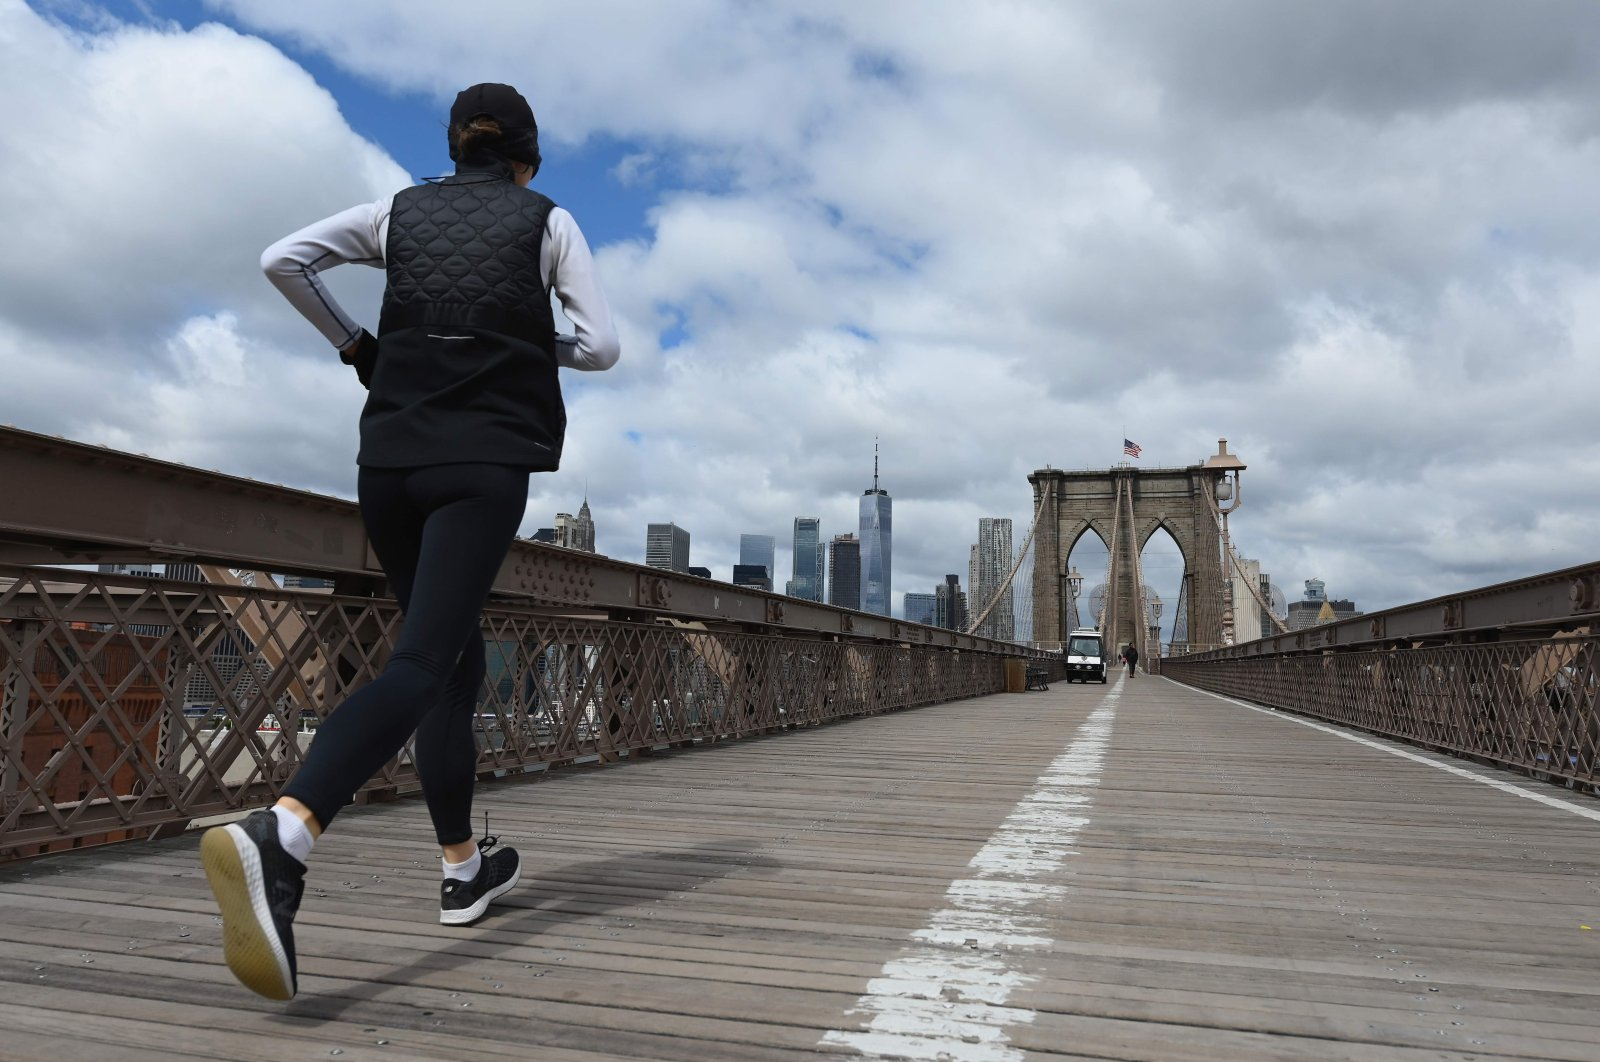 A woman jogs over the nearly empty Brooklyn Bridge in New York City on April 10, 2020. (AFP Photo)